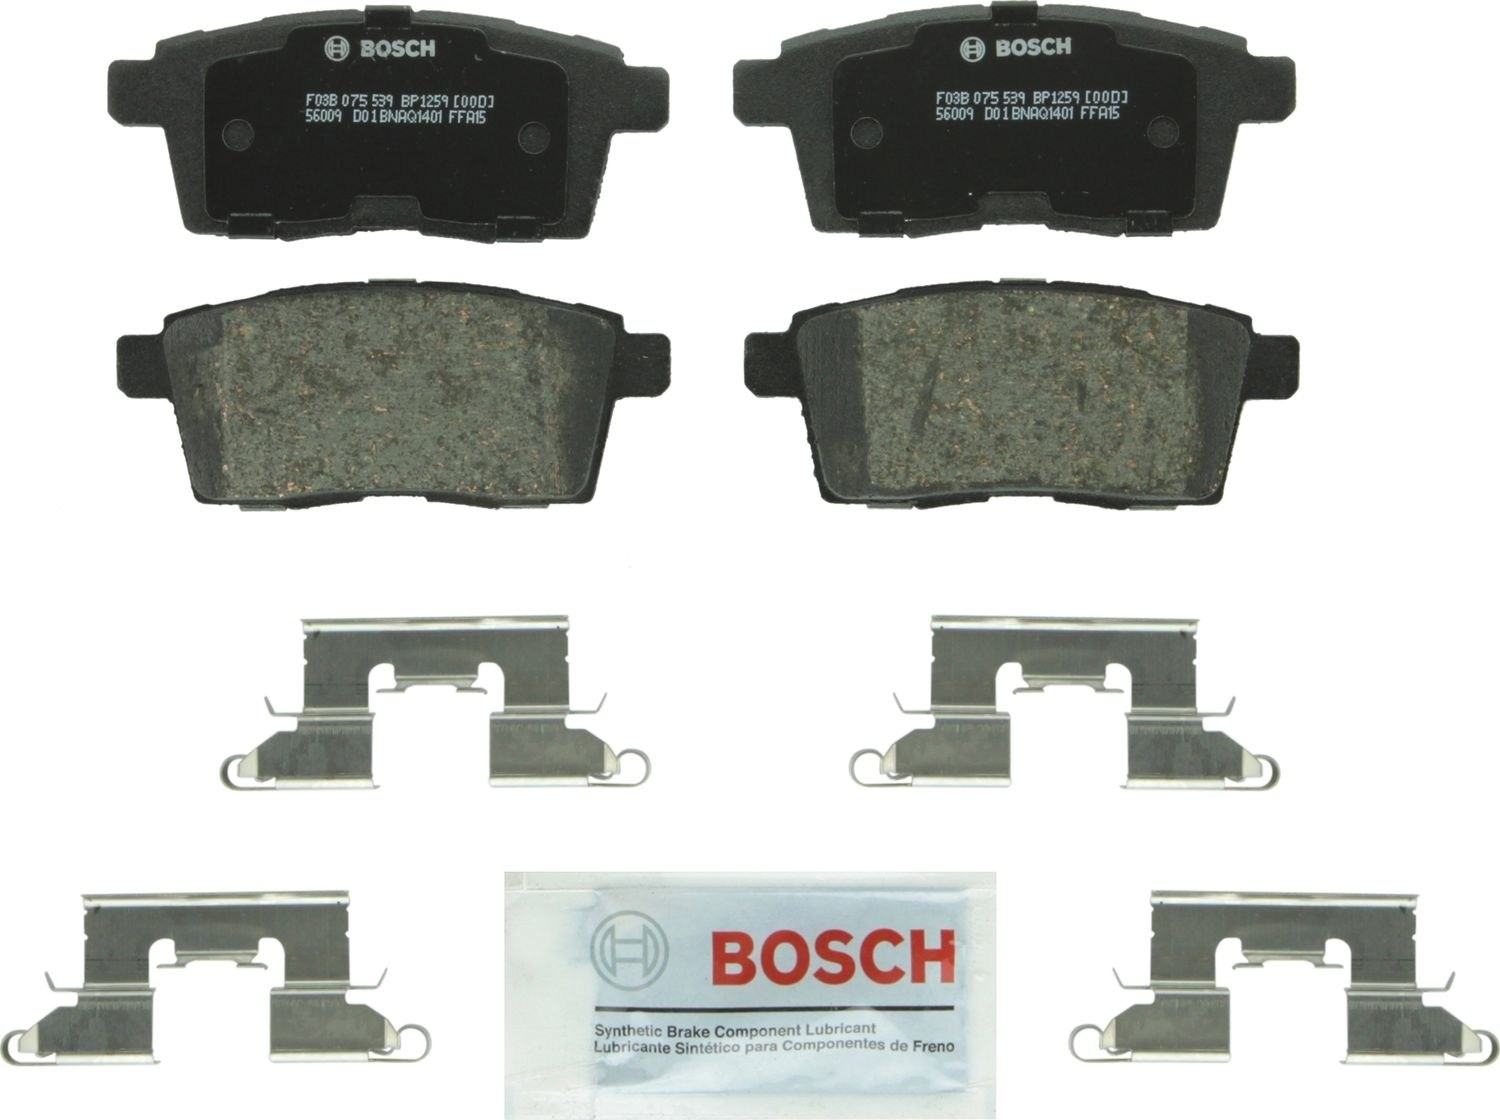 BOSCH BRAKE - Bosch QuietCast Pads w/ Hardware (Rear) - BQC BP1259